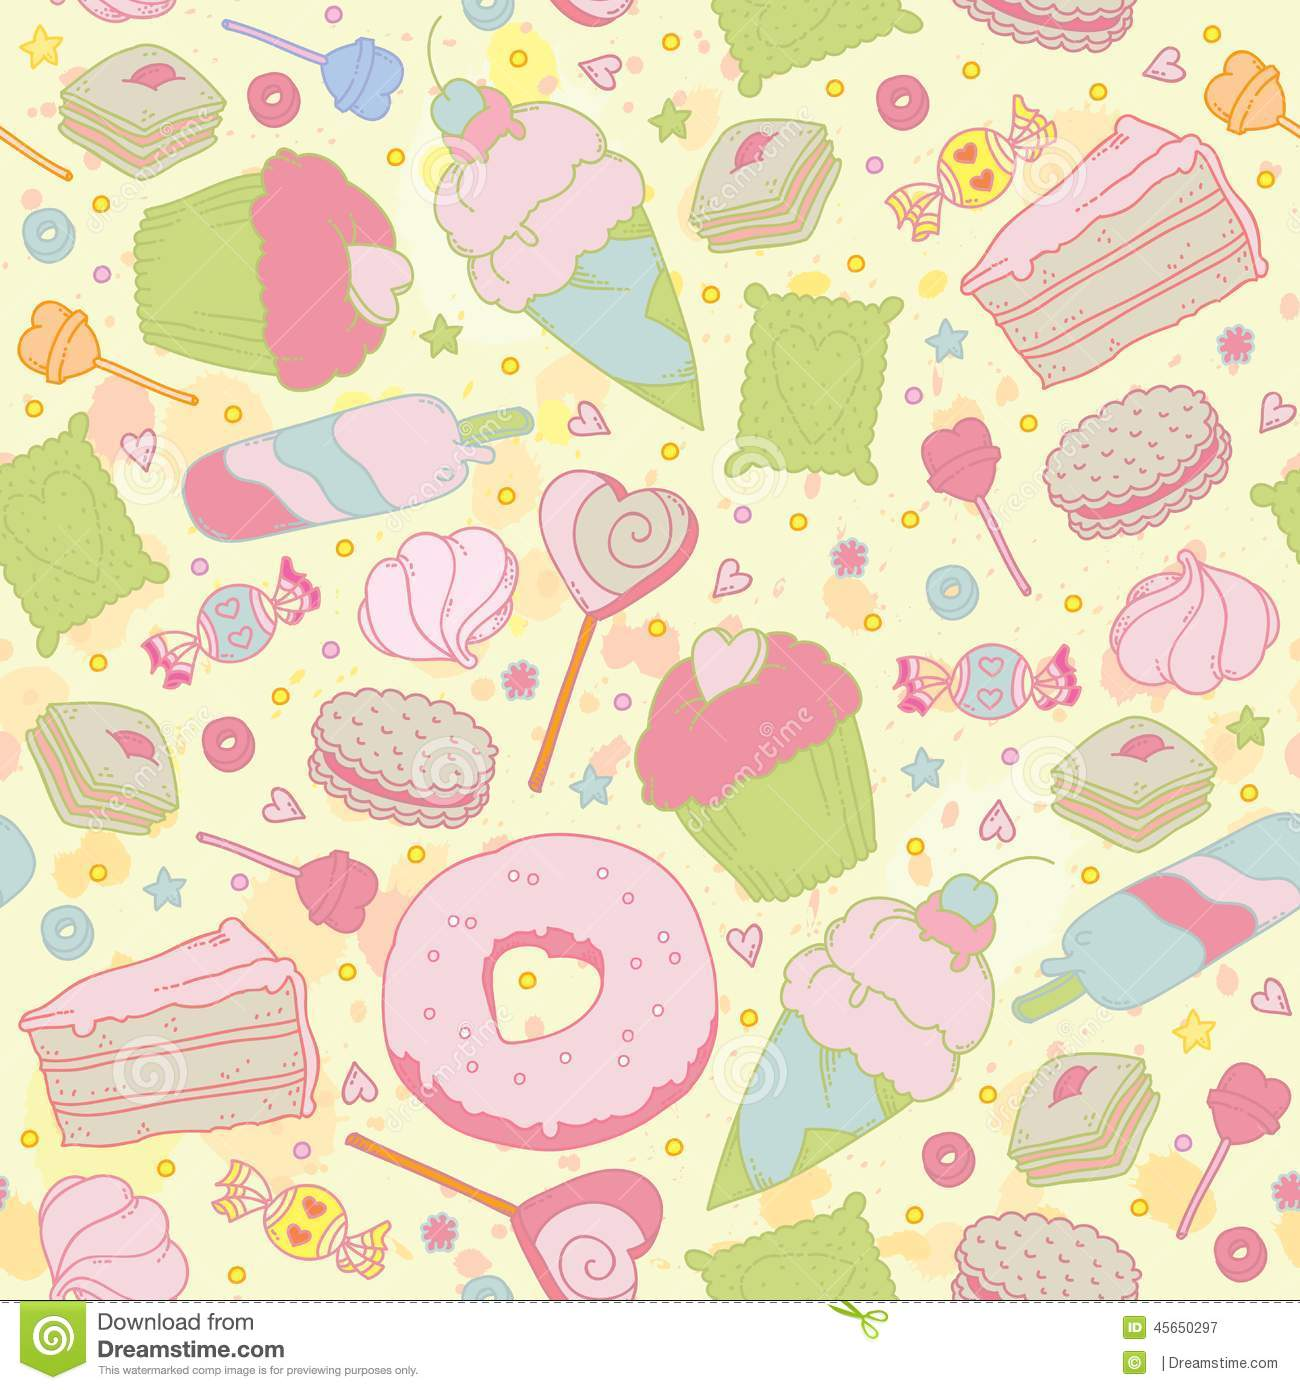 Sweet Heart Seamless Pattern - Sweets, Cupcakes, Stock Vector ...